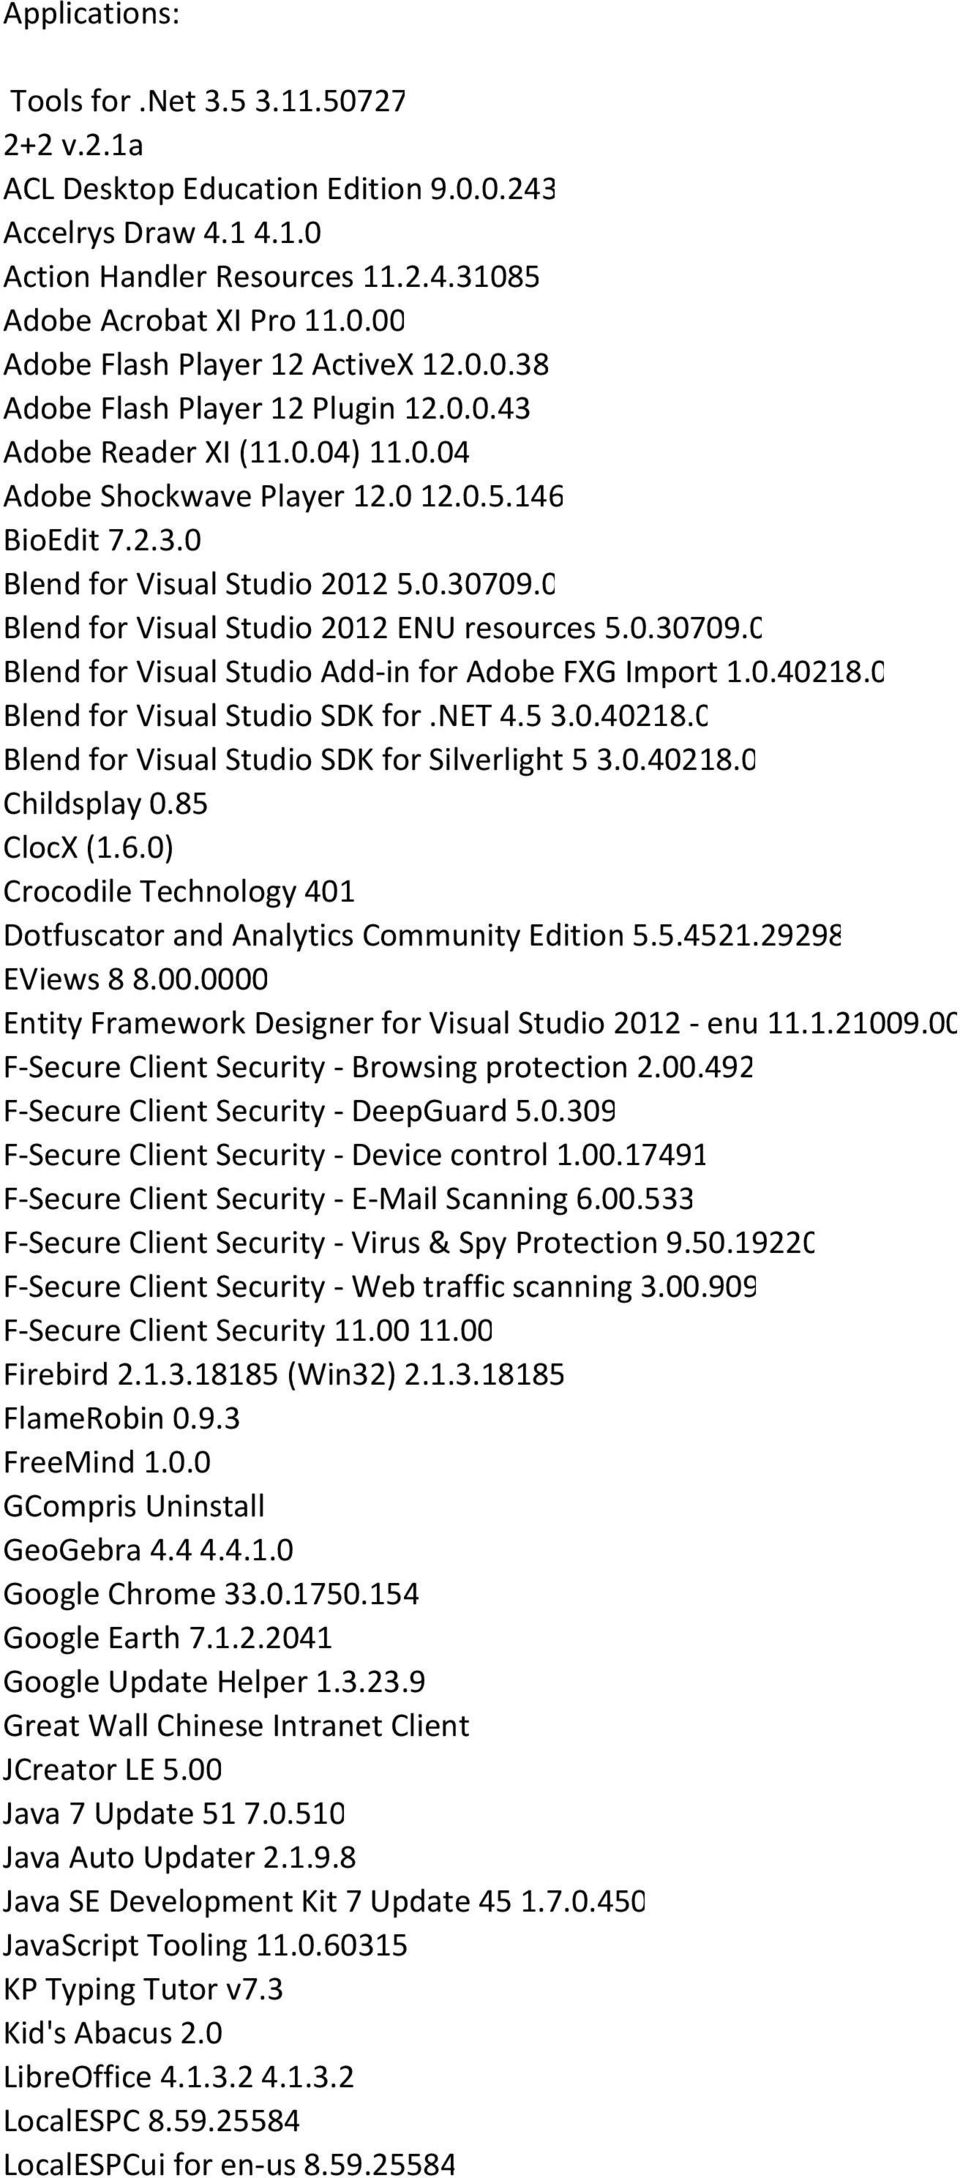 0 Blend for Visual Studio 2012 ENU resources 5.0.30709.0 Blend for Visual Studio Add in for Adobe FXG Import 1.0.40218.0 Blend for Visual Studio SDK for.net 4.5 3.0.40218.0 Blend for Visual Studio SDK for Silverlight 5 3.